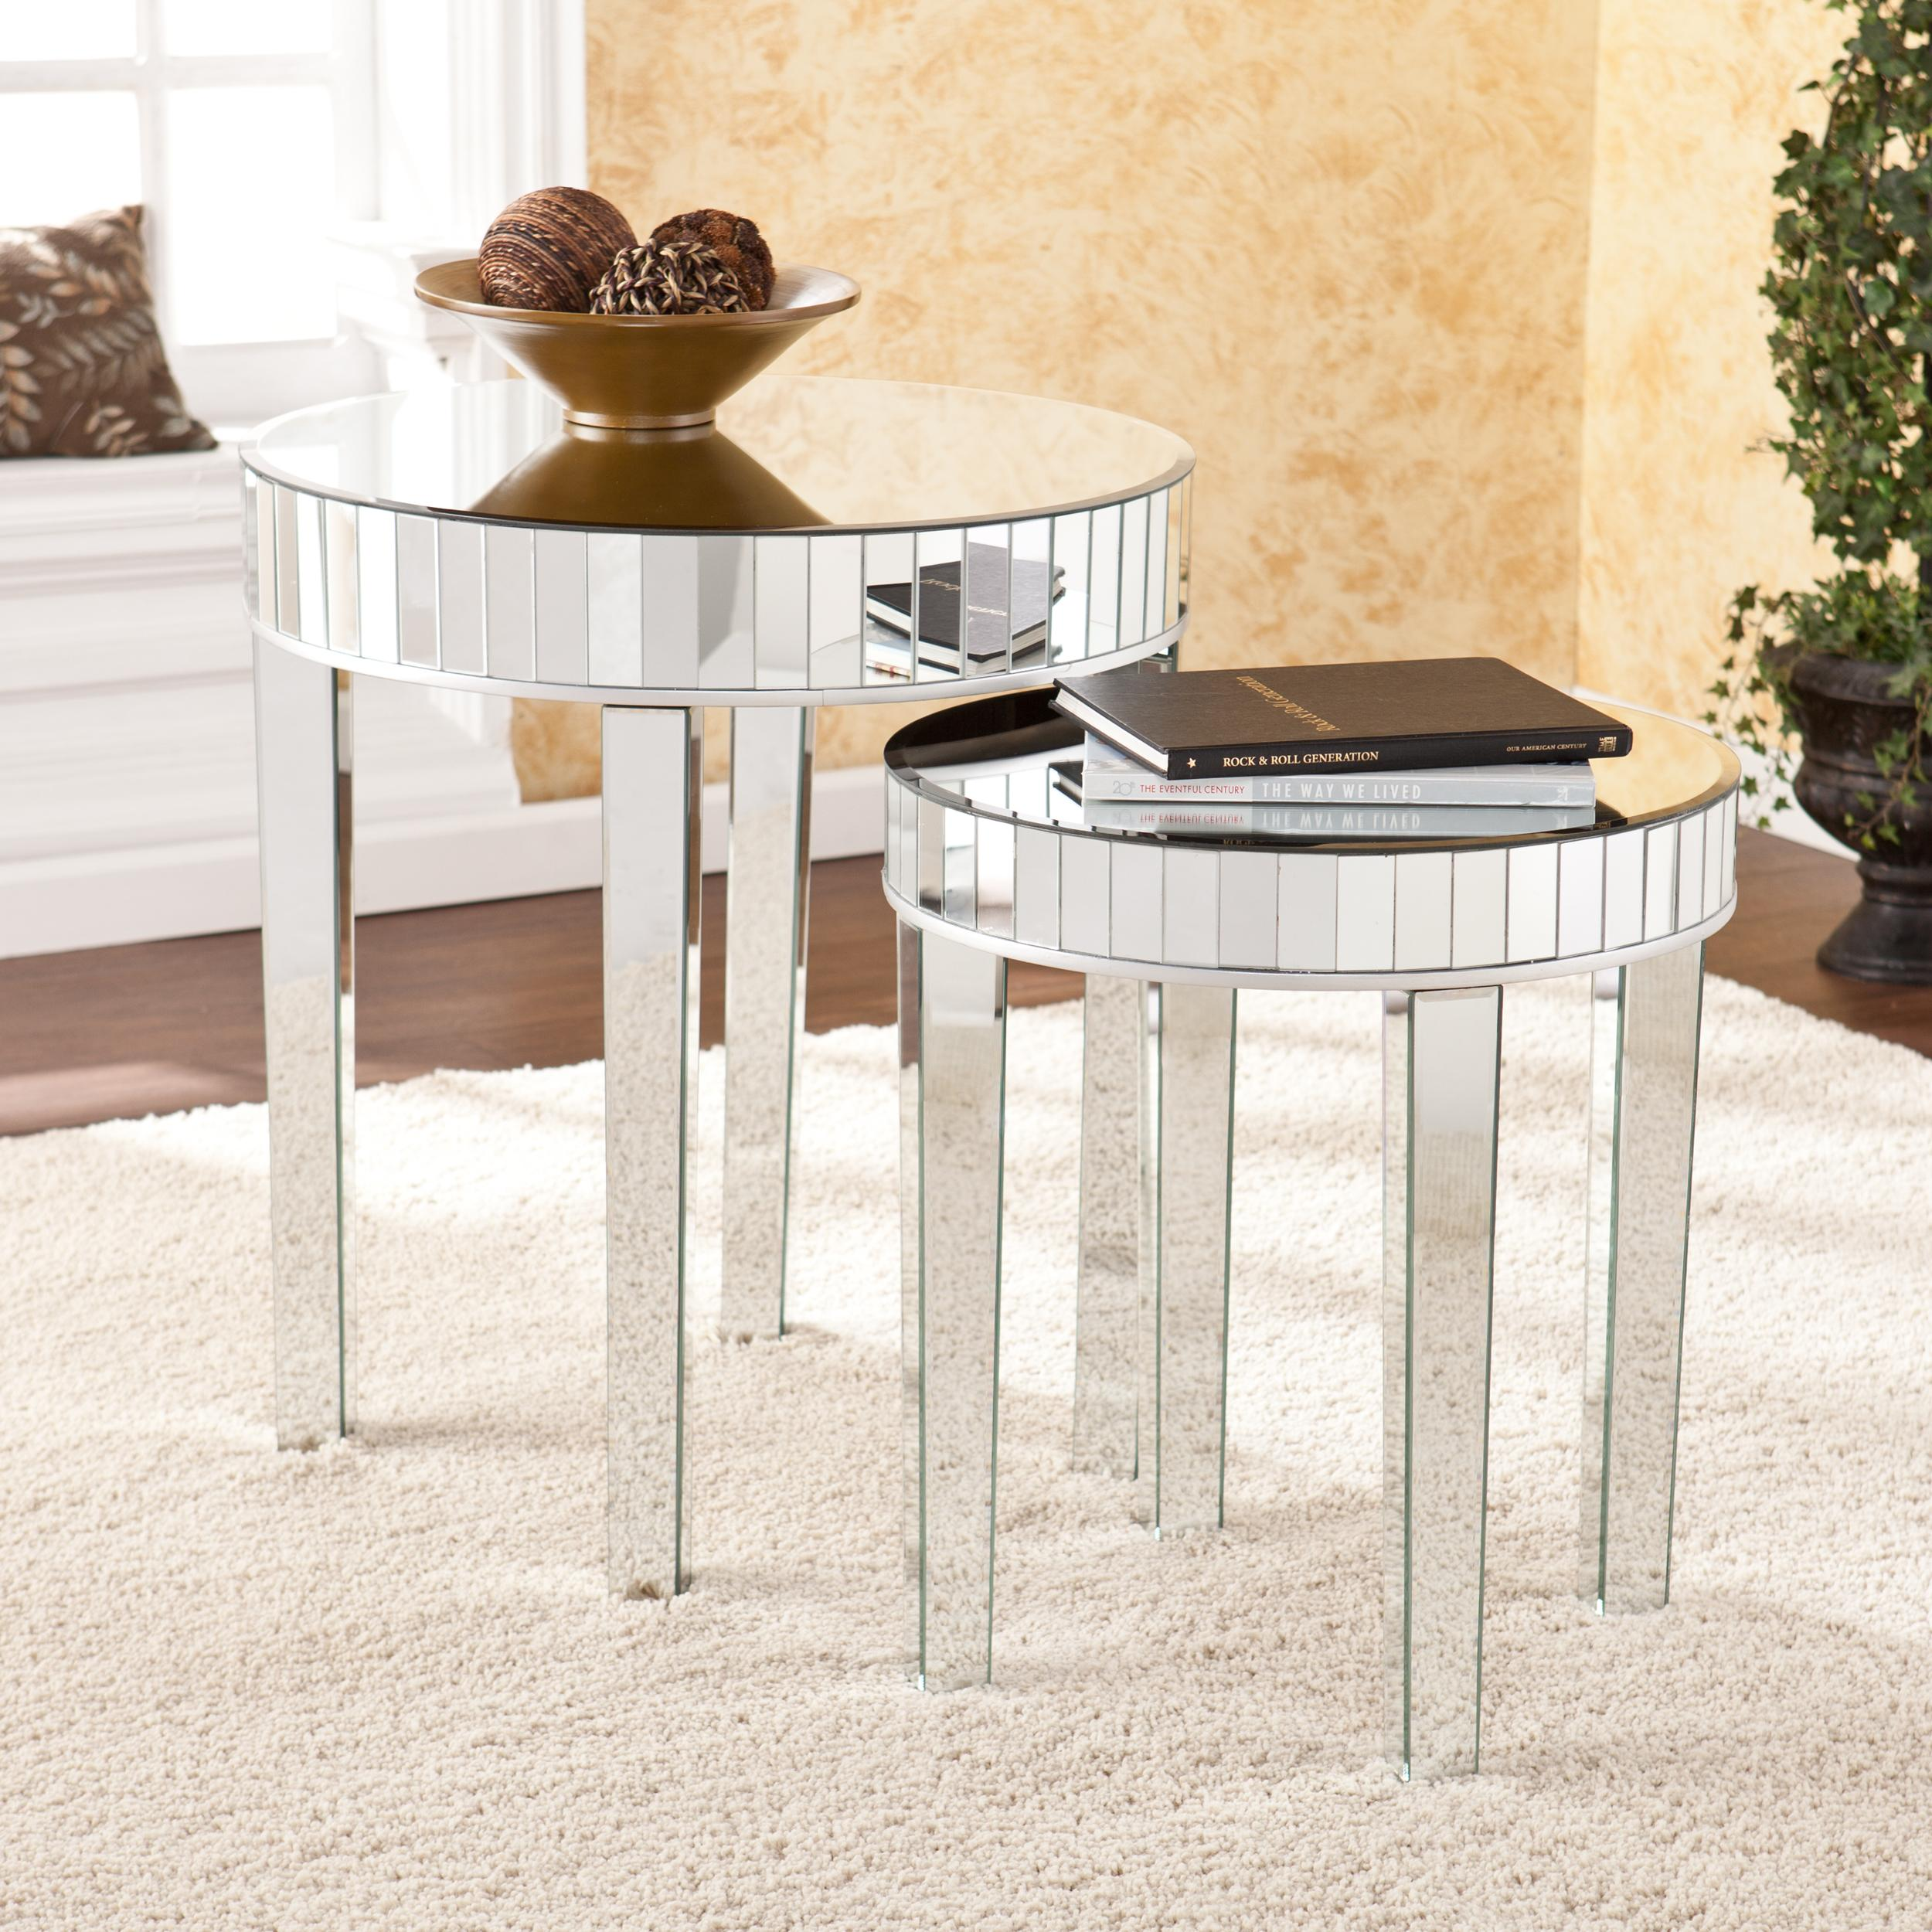 Marvelous photograph of Southern Enterprises 2 Piece Jennings Round Mirrored Nesting Table Set with #9F702C color and 2500x2500 pixels